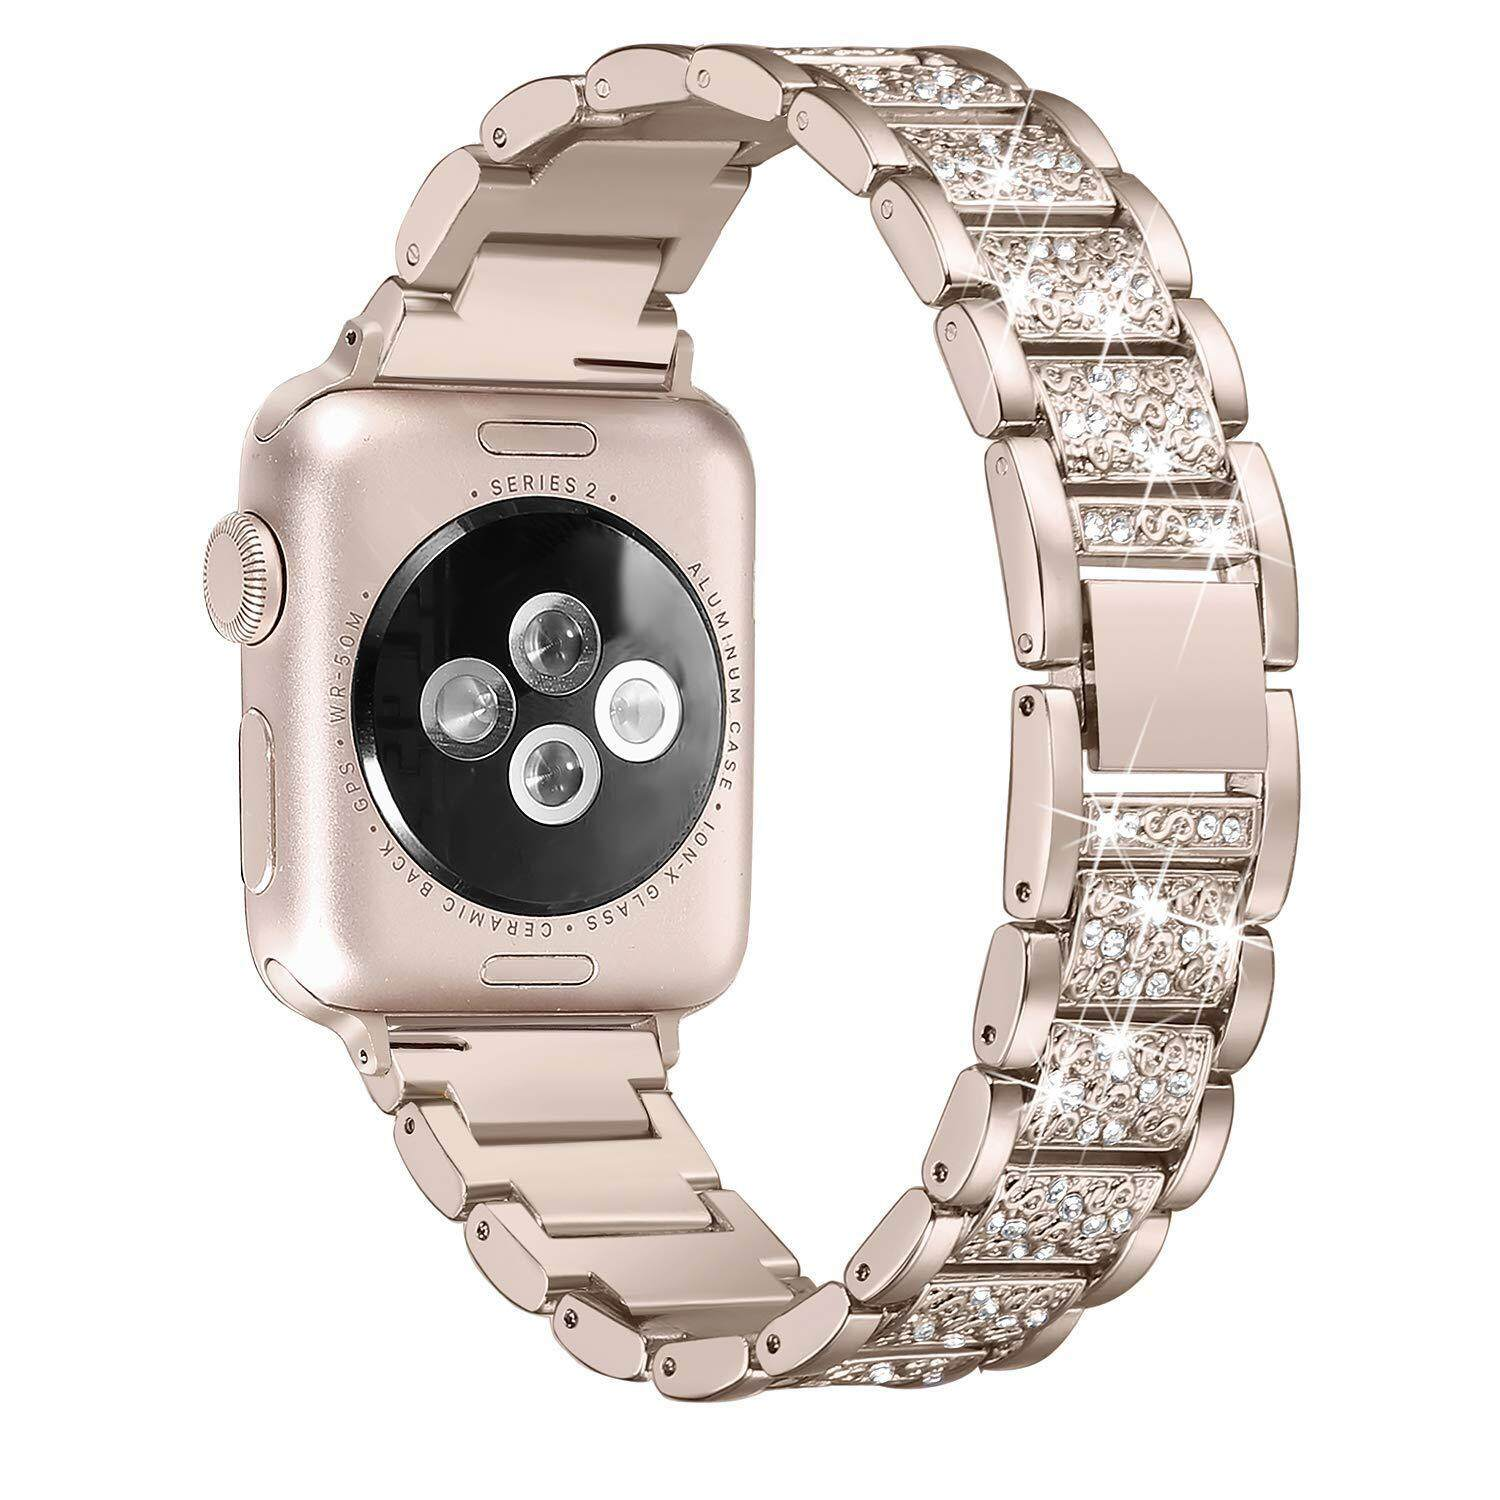 Stylish Diamonds Decor Stainless Steel Watch Band Replacement for Apple Watch Series 3/2/1 42mm